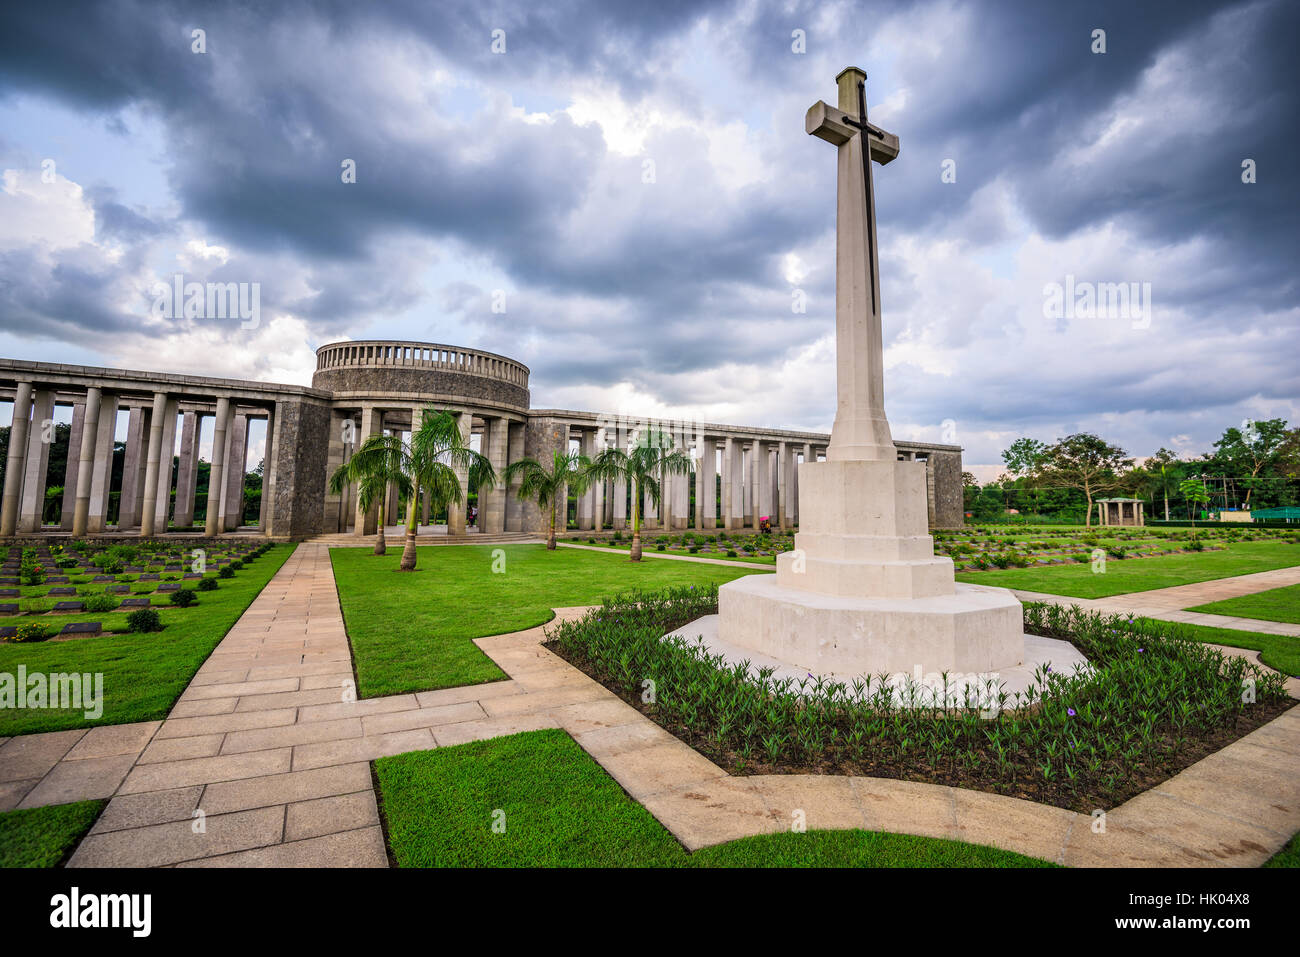 Taukkyan War Cemetery dedicated to allied losses during WWII near Yangon, Myanmar. Stock Photo